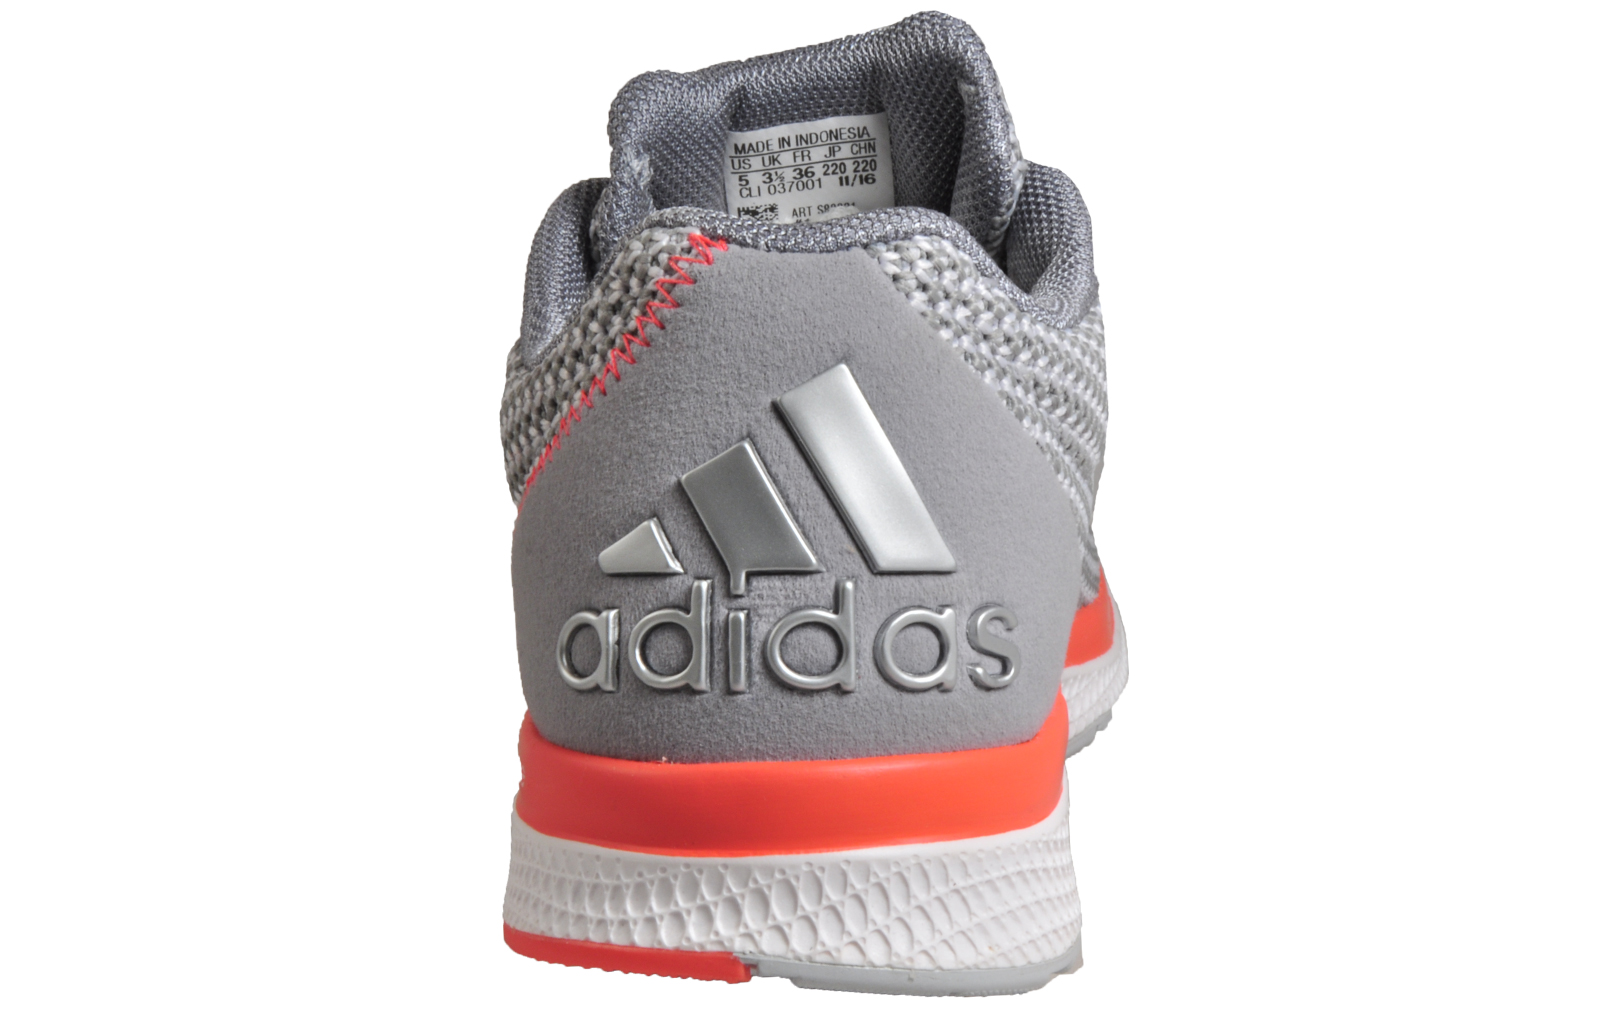 Adidas Lightster Bounce Womens Running Shoes Fitness Gym Trainers Grey f31a6a0c40df4